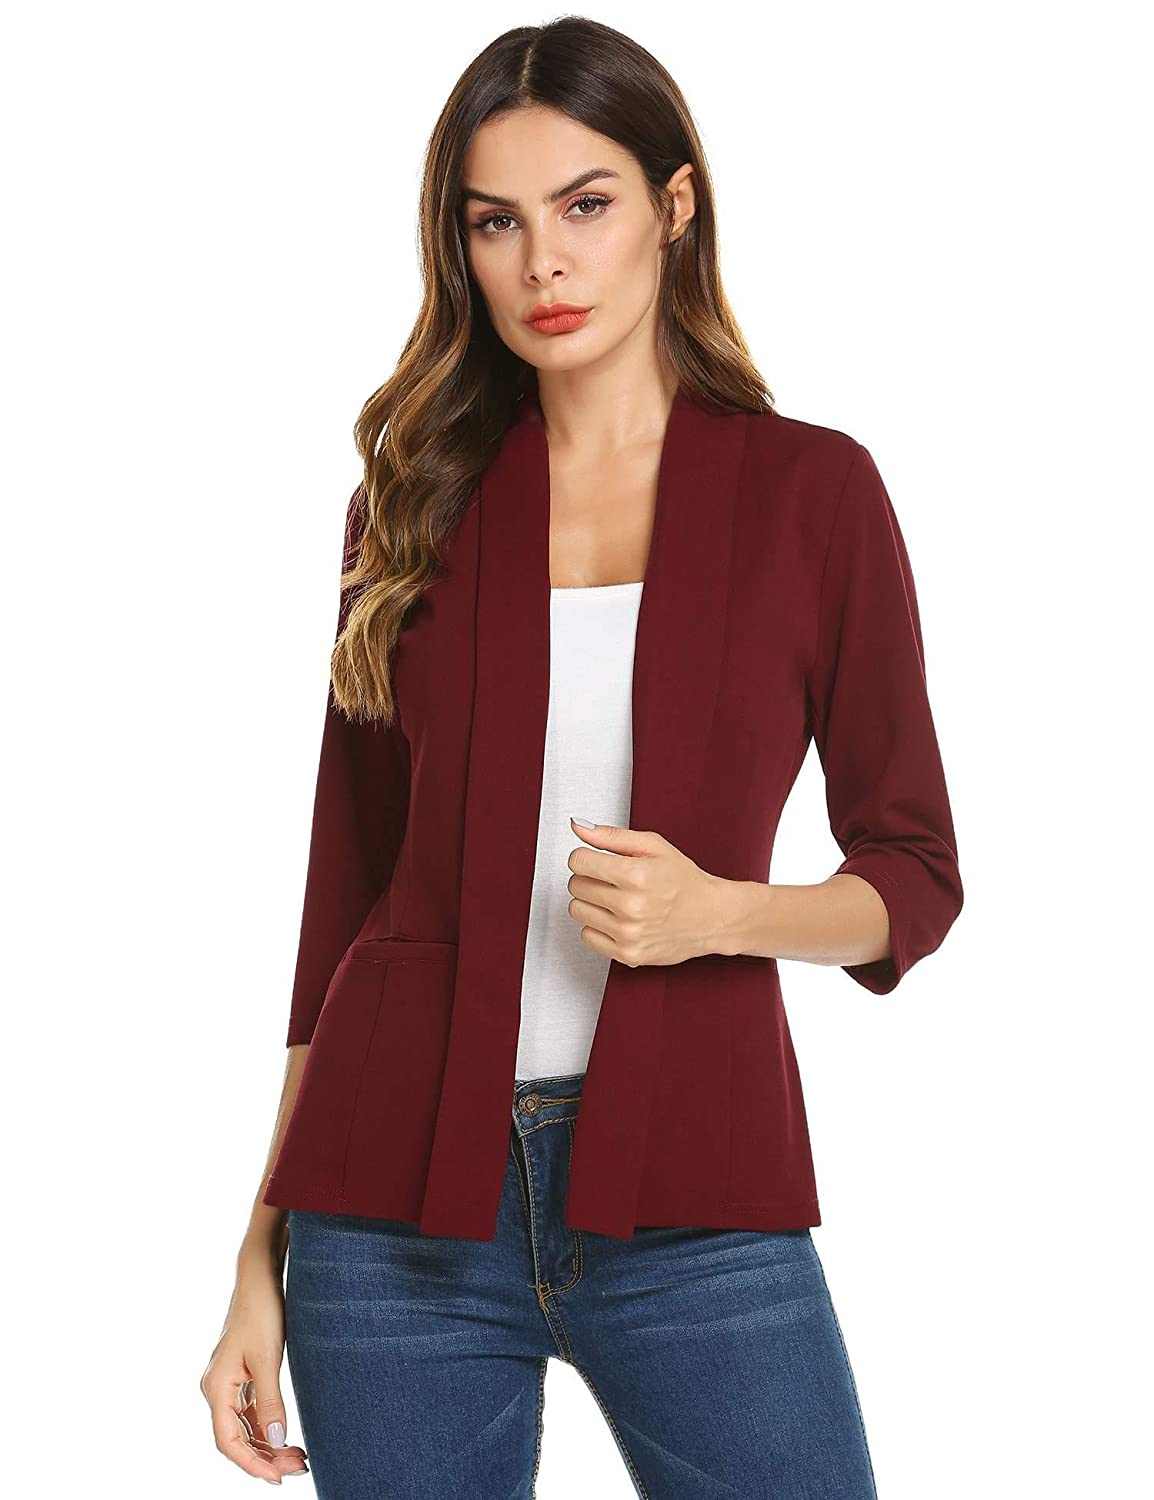 Aimage Women Solid Open Front Blazer Cardigans 3 4 Sleeve Pockets Lapel Suit Jacket